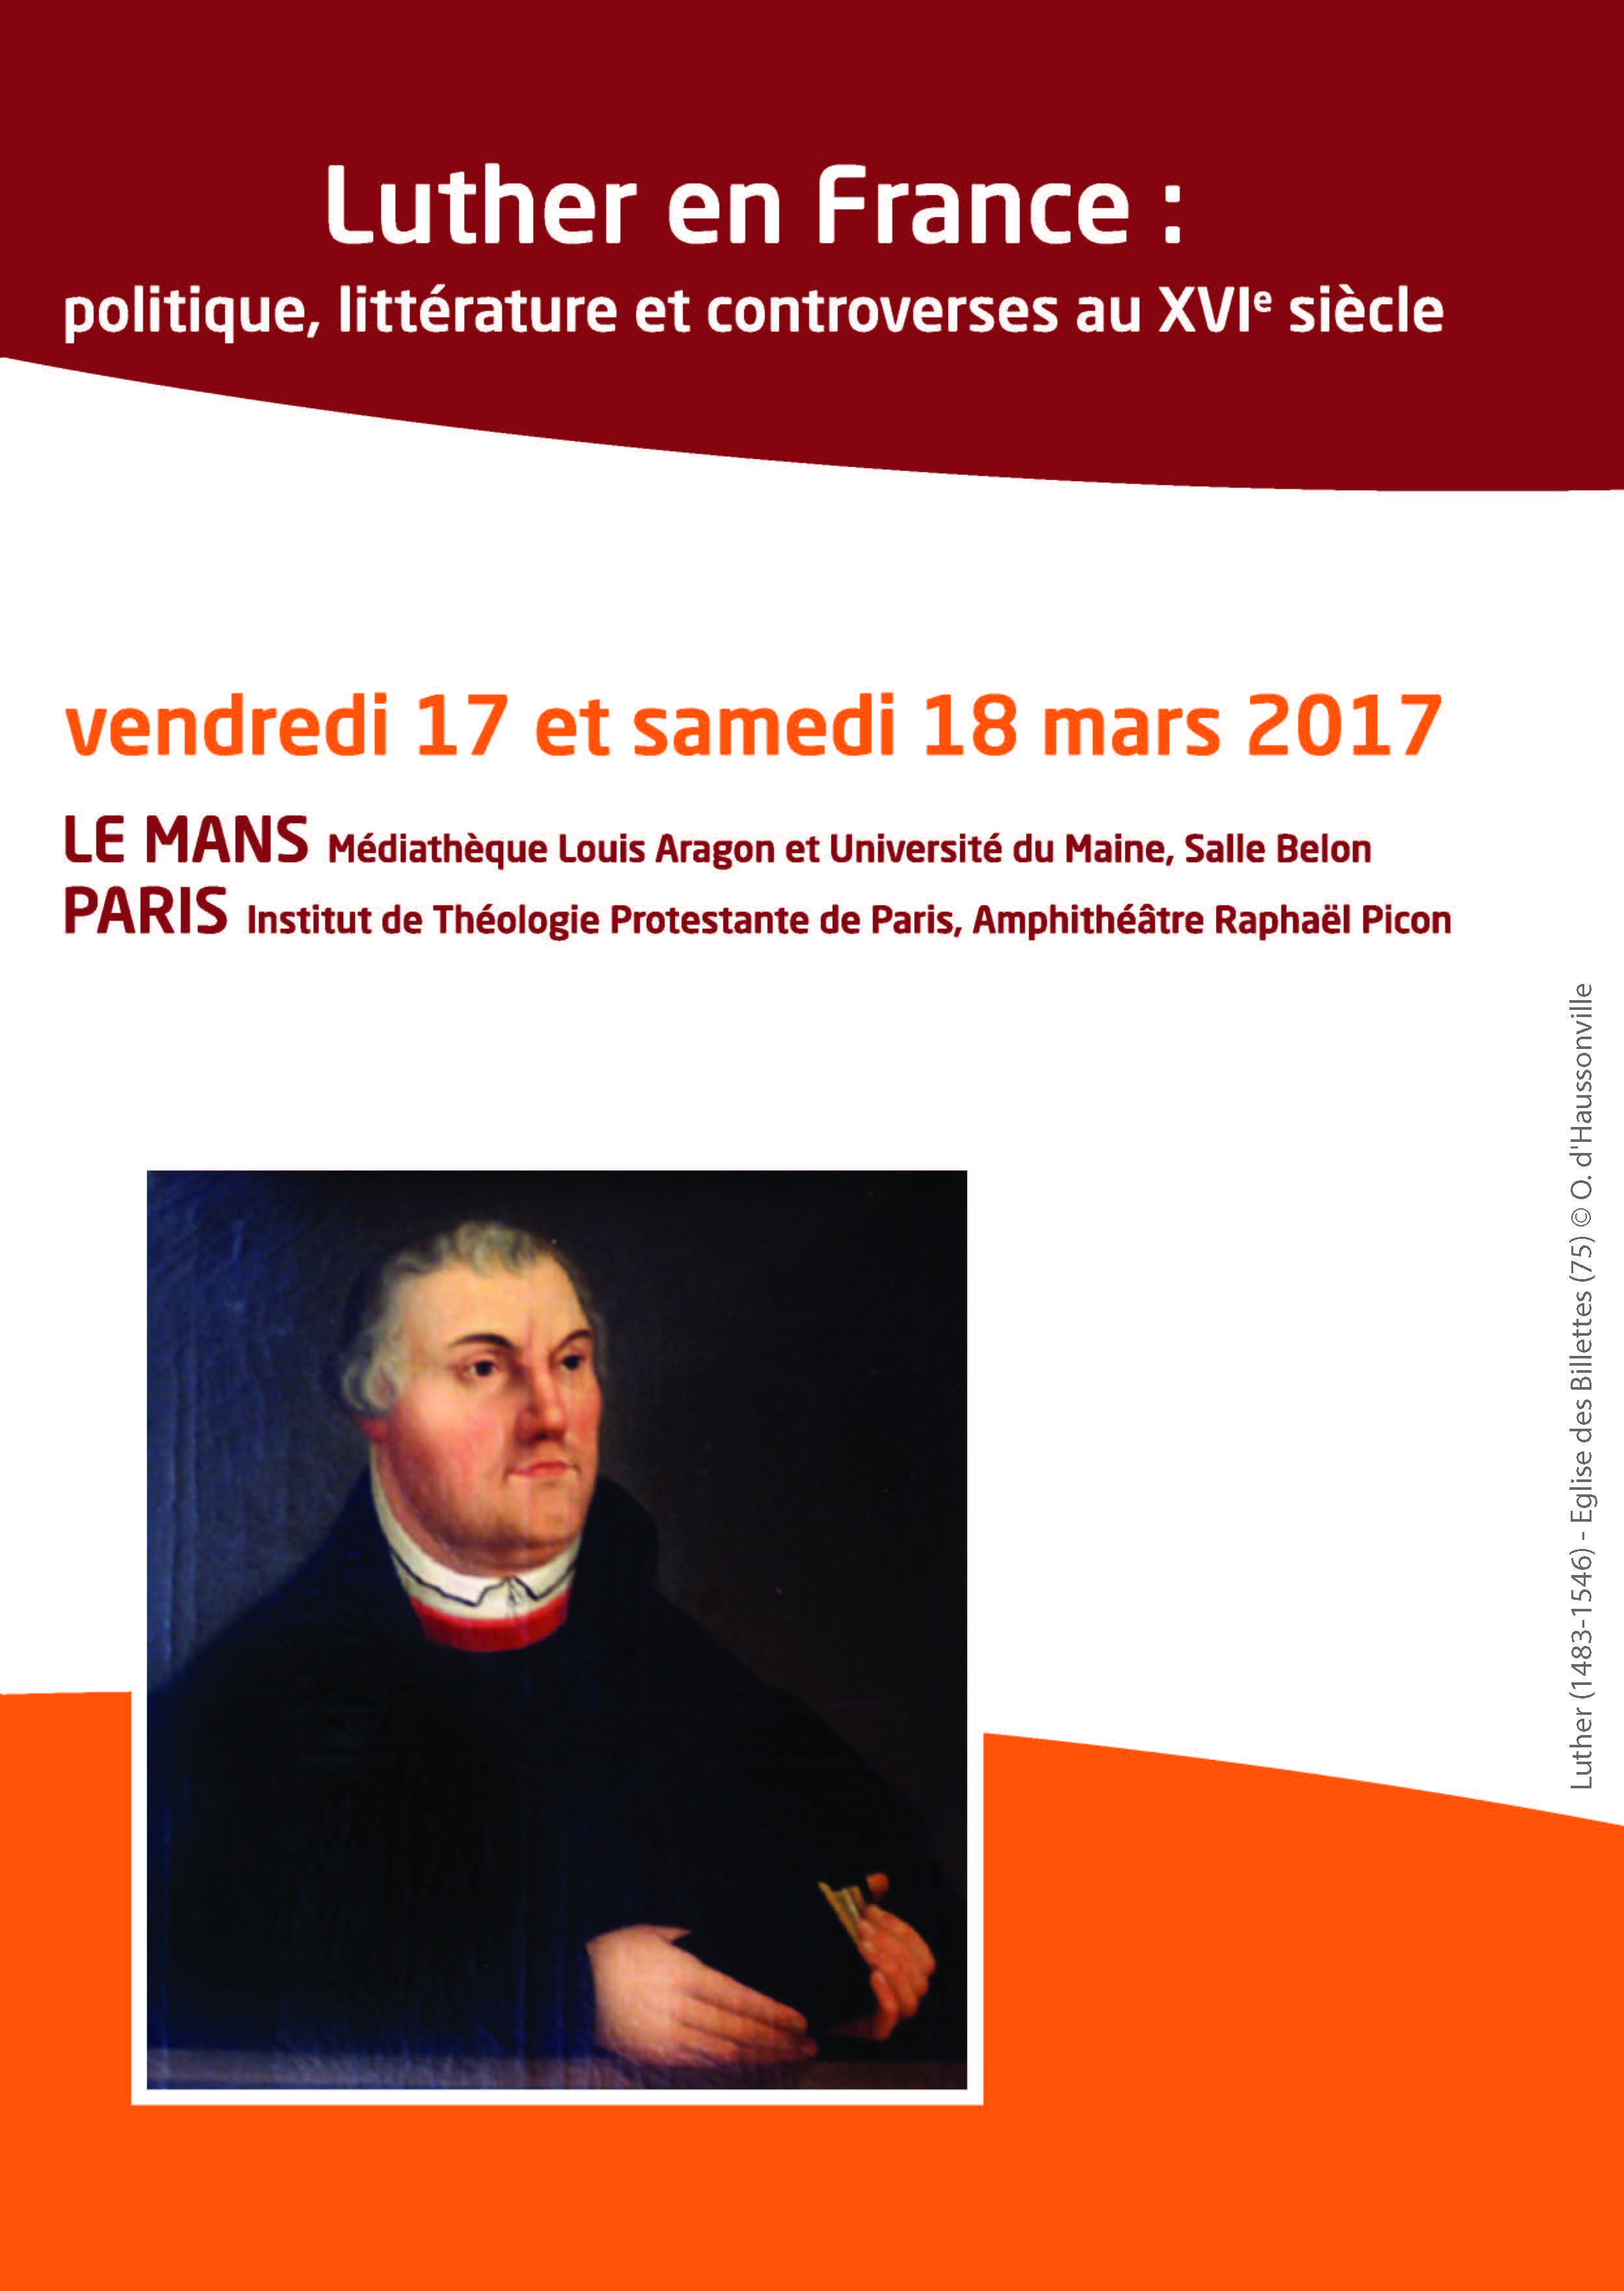 luther flyer 17 18 mars 2017